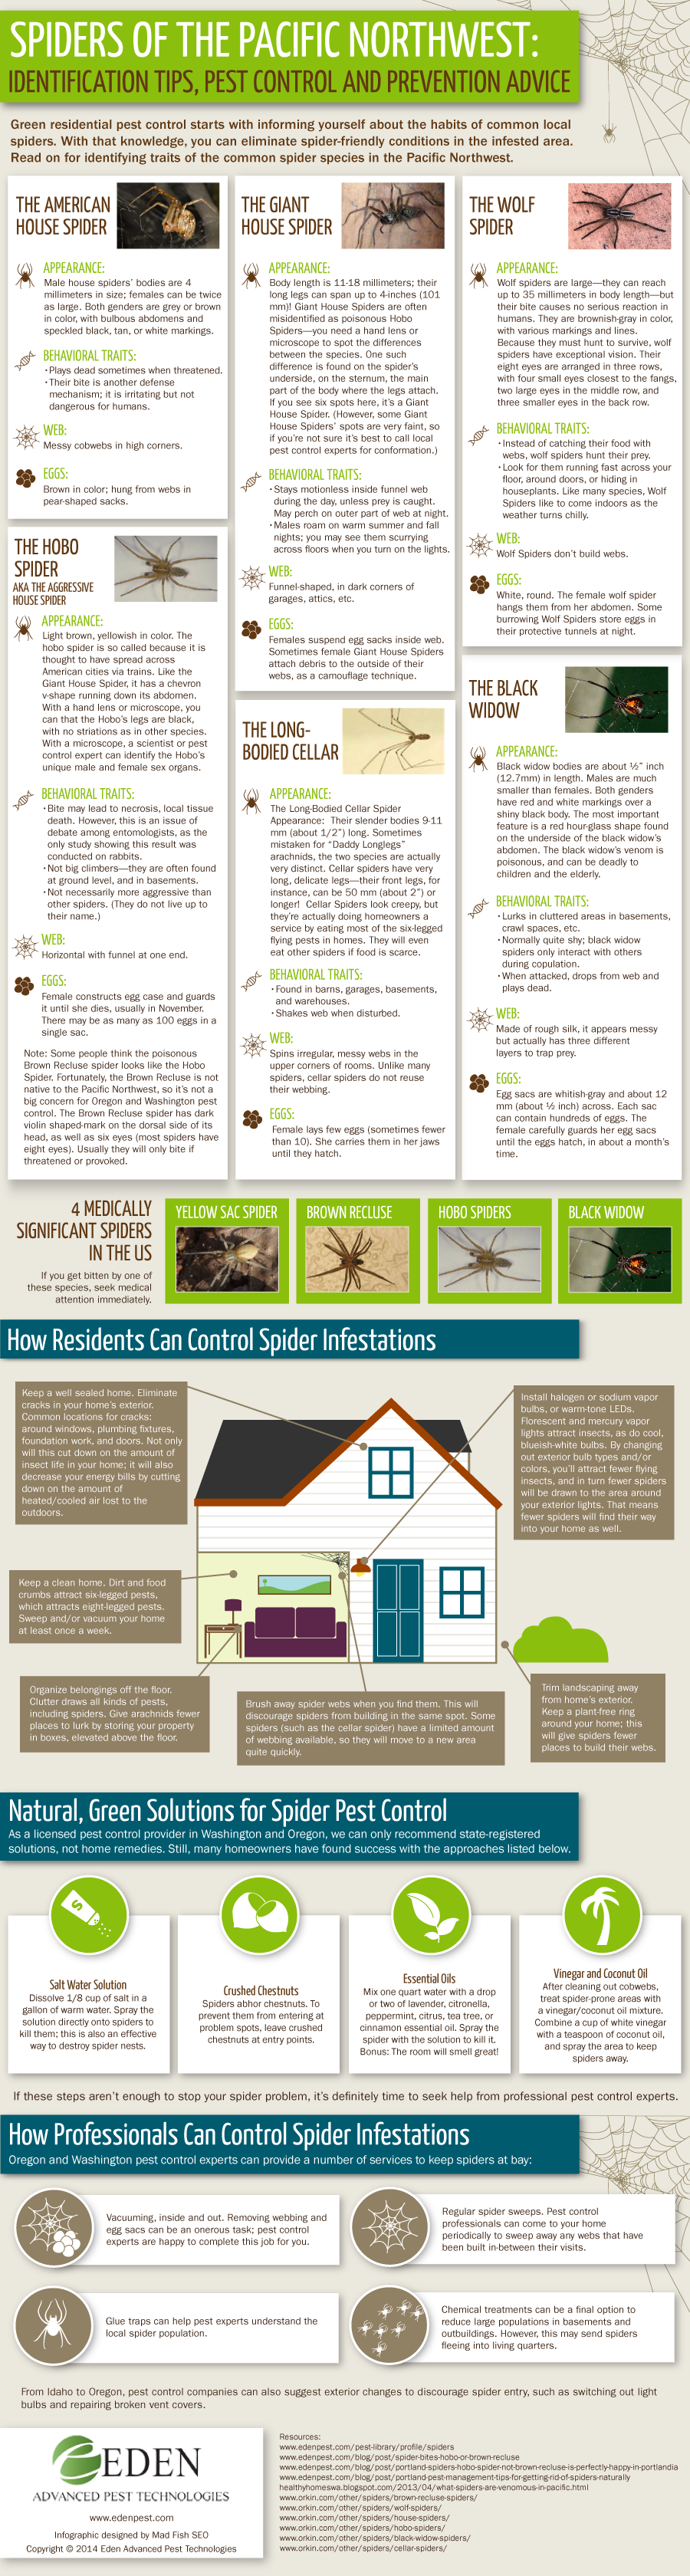 Spiders of the Pacific Northwest